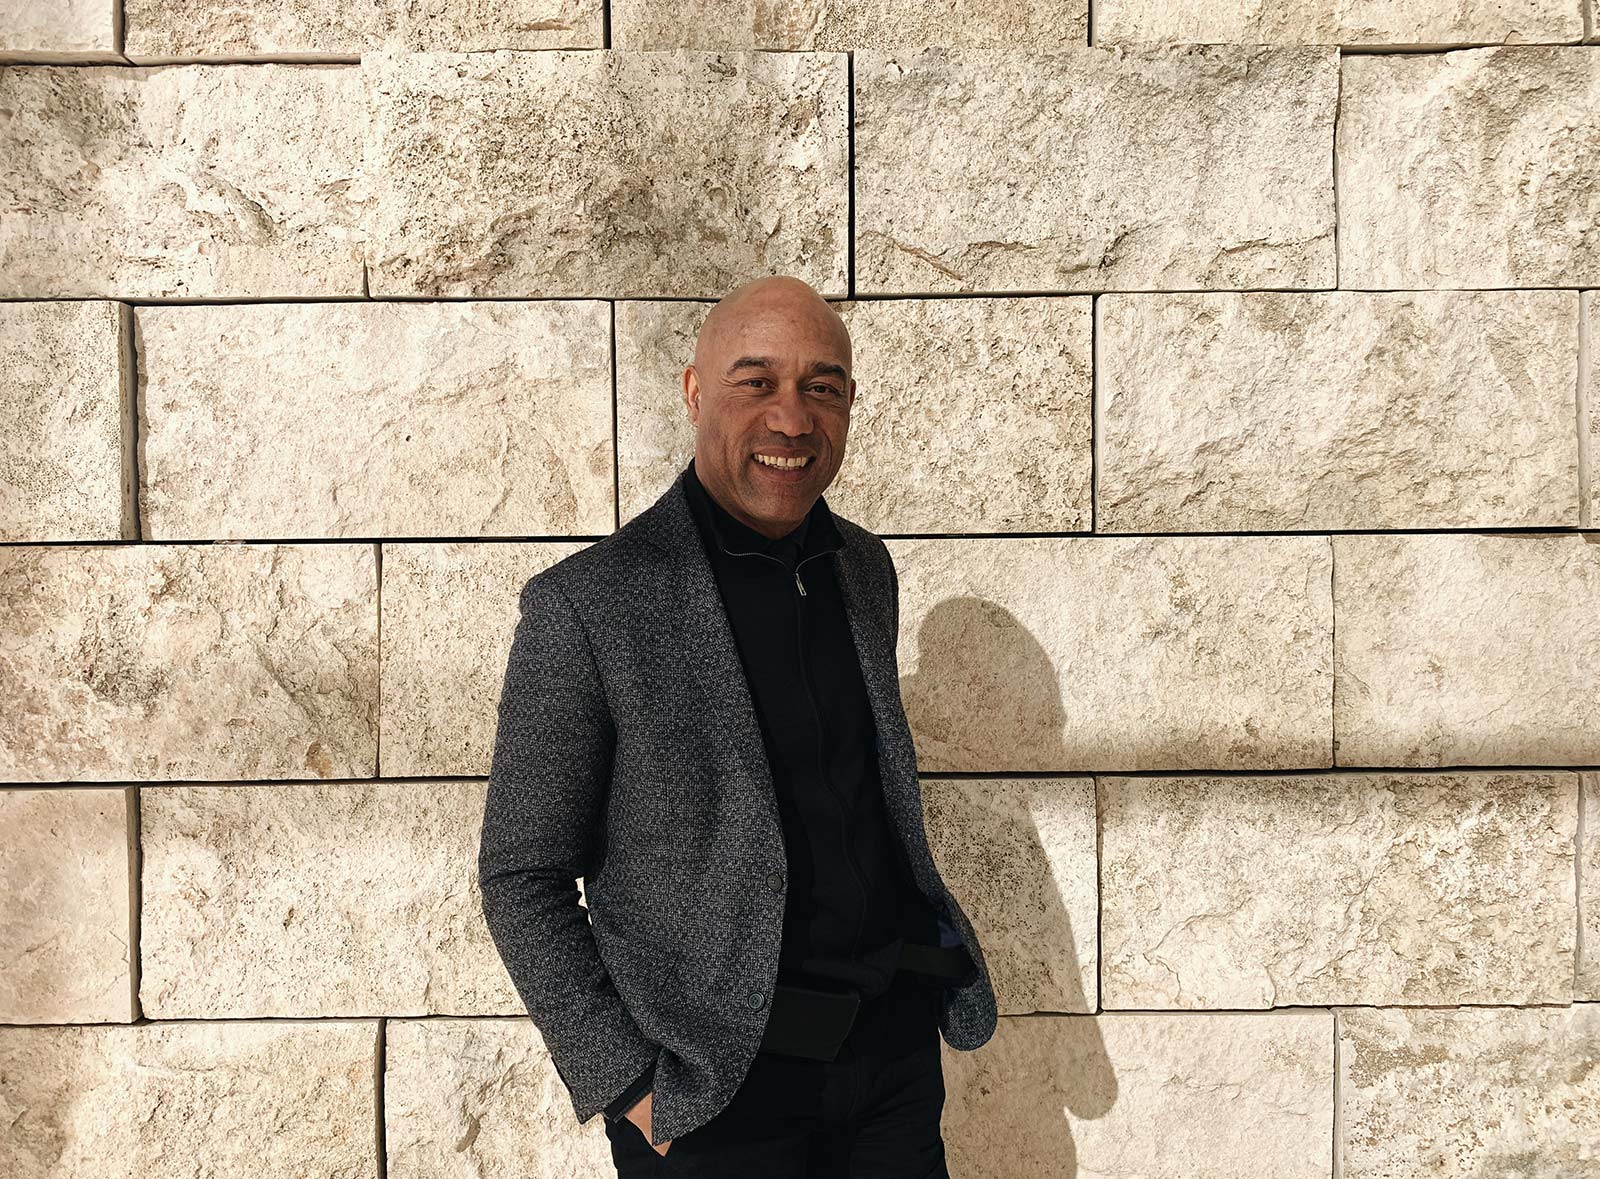 A man dressed in black with a gray blazer stands before a travertine wall